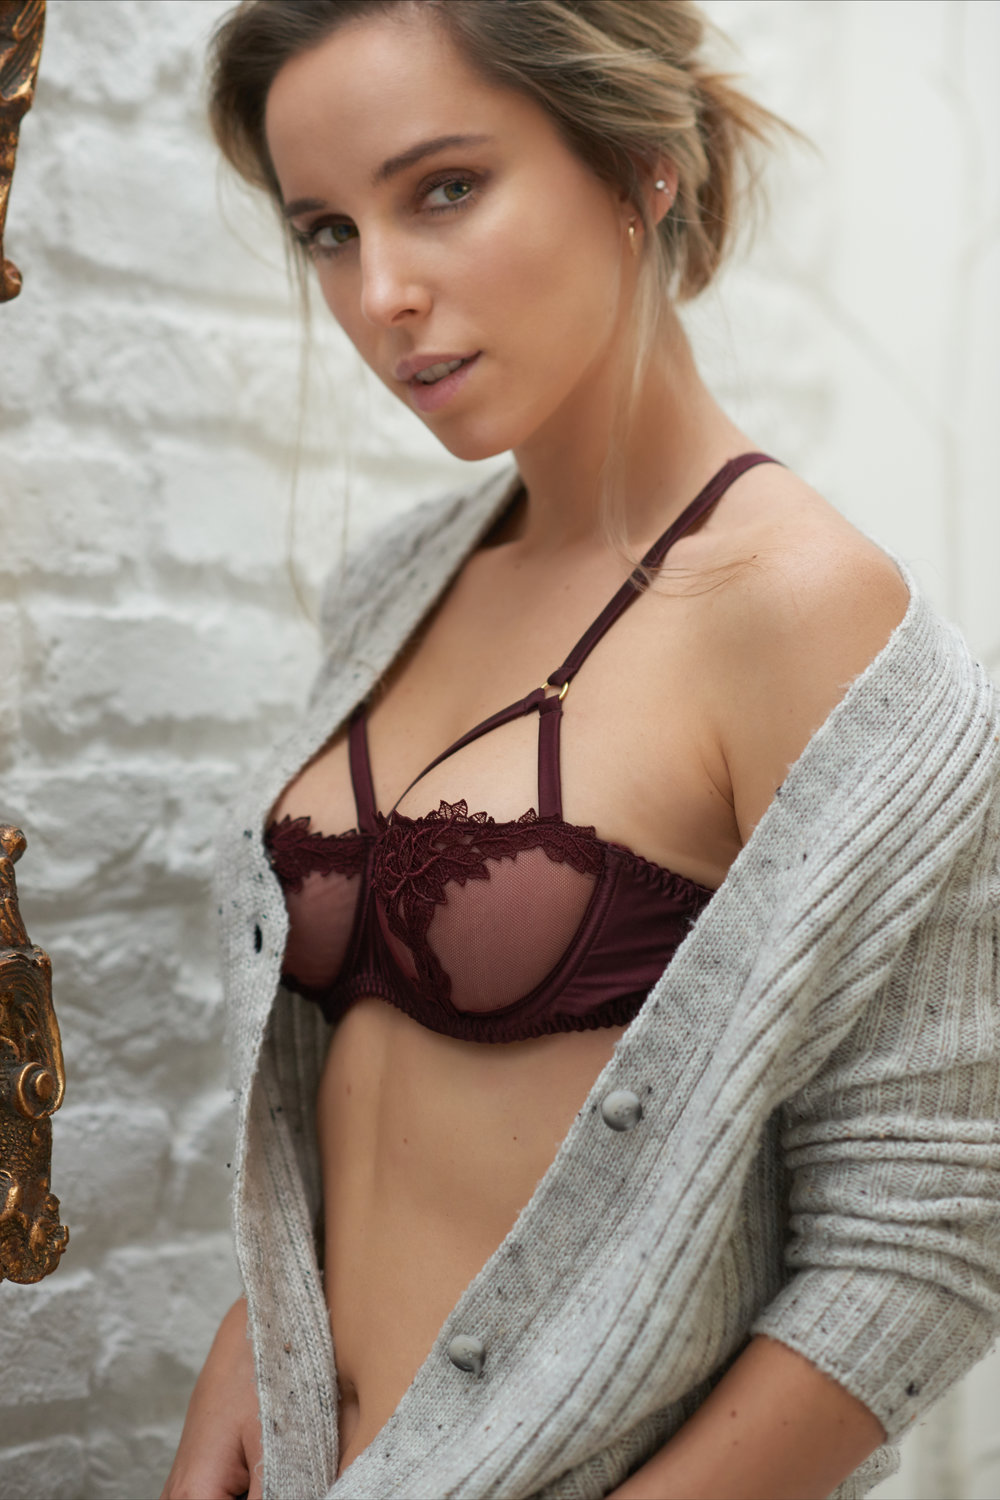 Zsanett is wearing Burgundy Strap Balcony bra